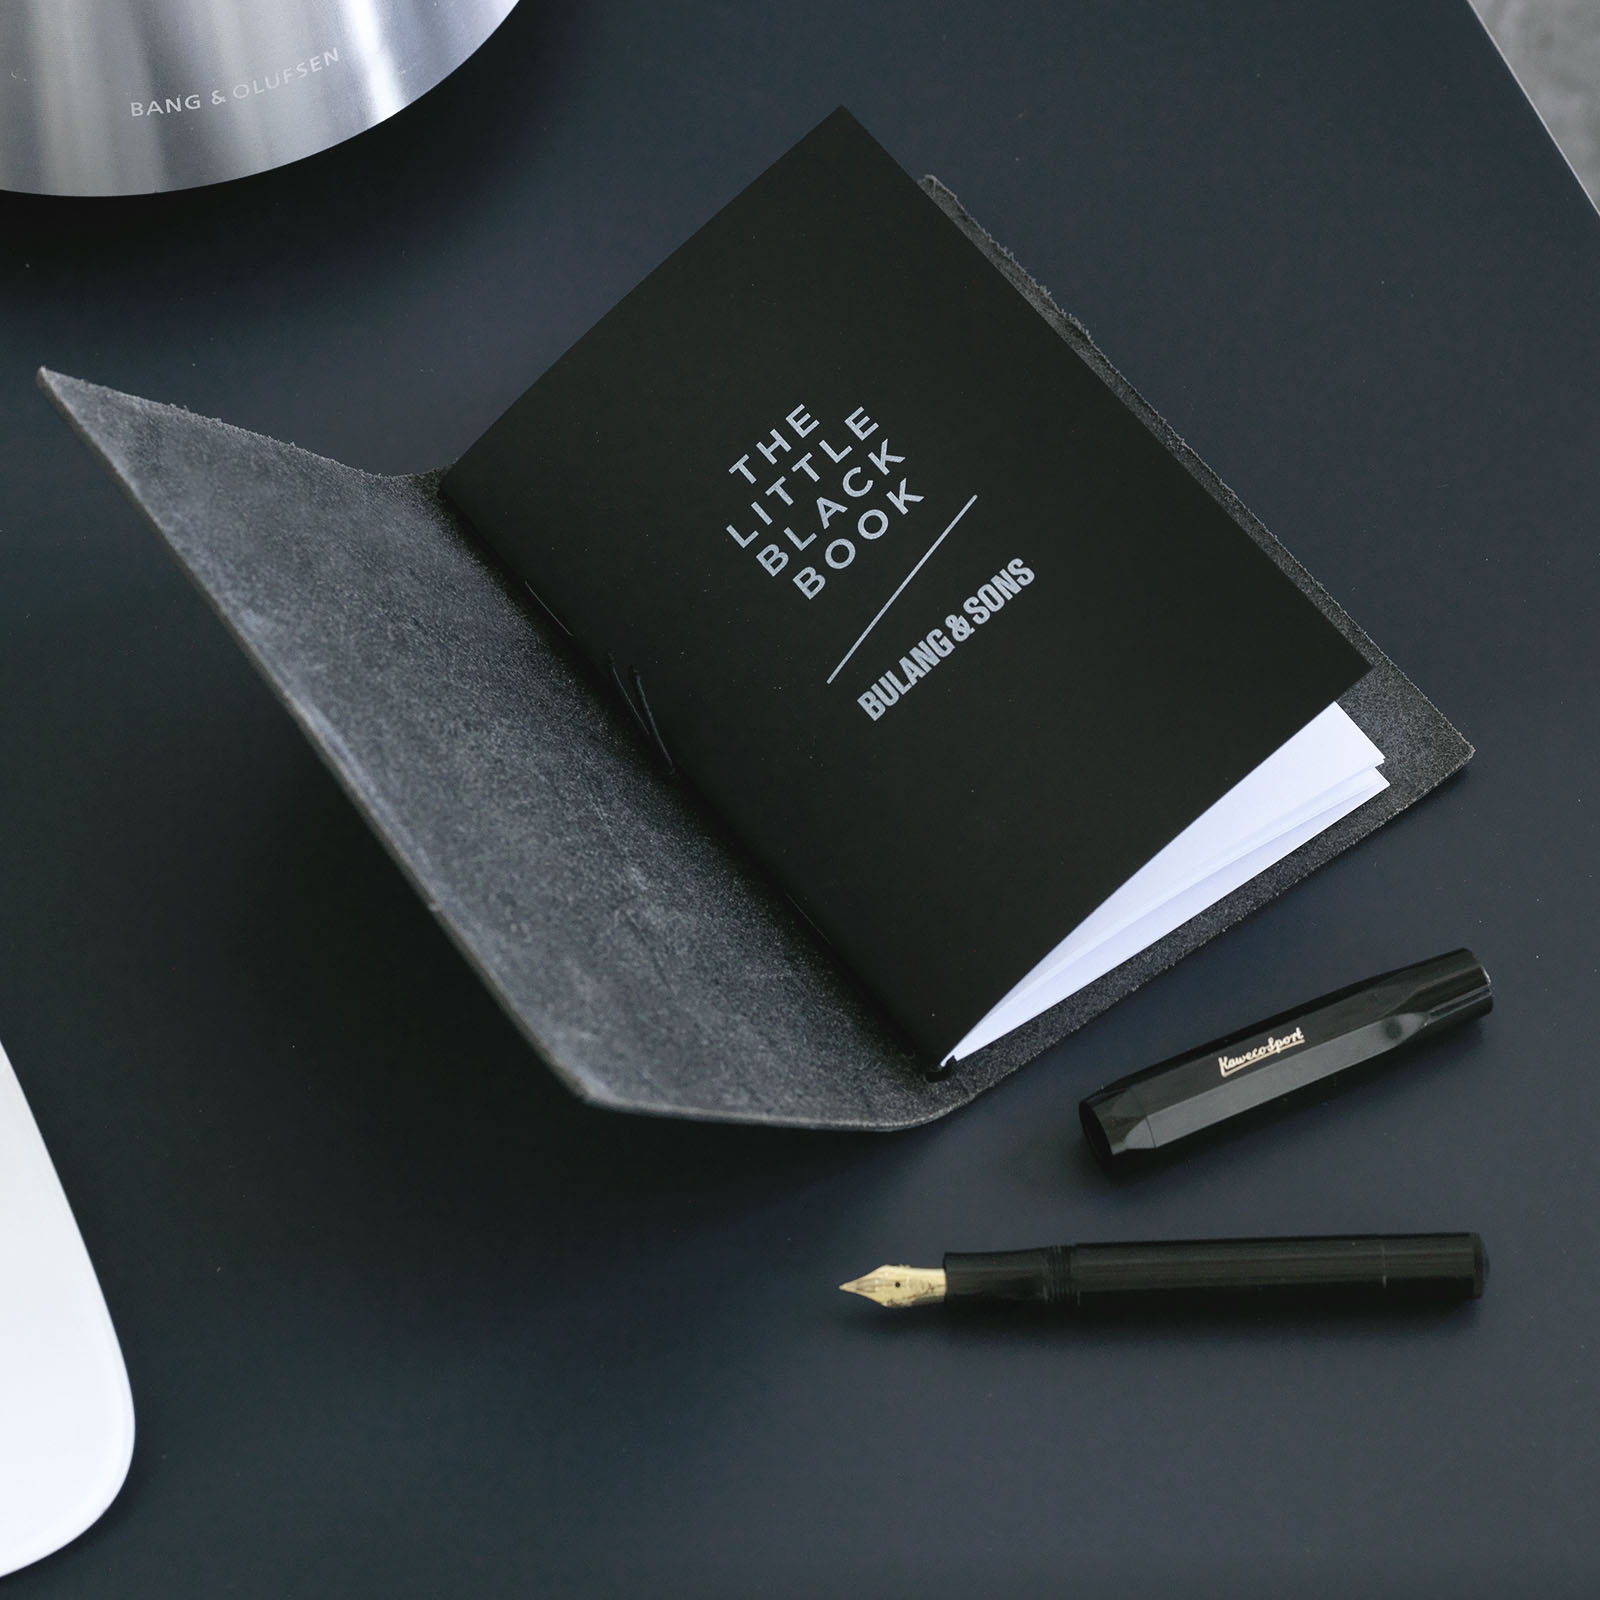 The 9 TO 5 Collection - Authentic Style for your Business and Life, Kaweco Fountain pen